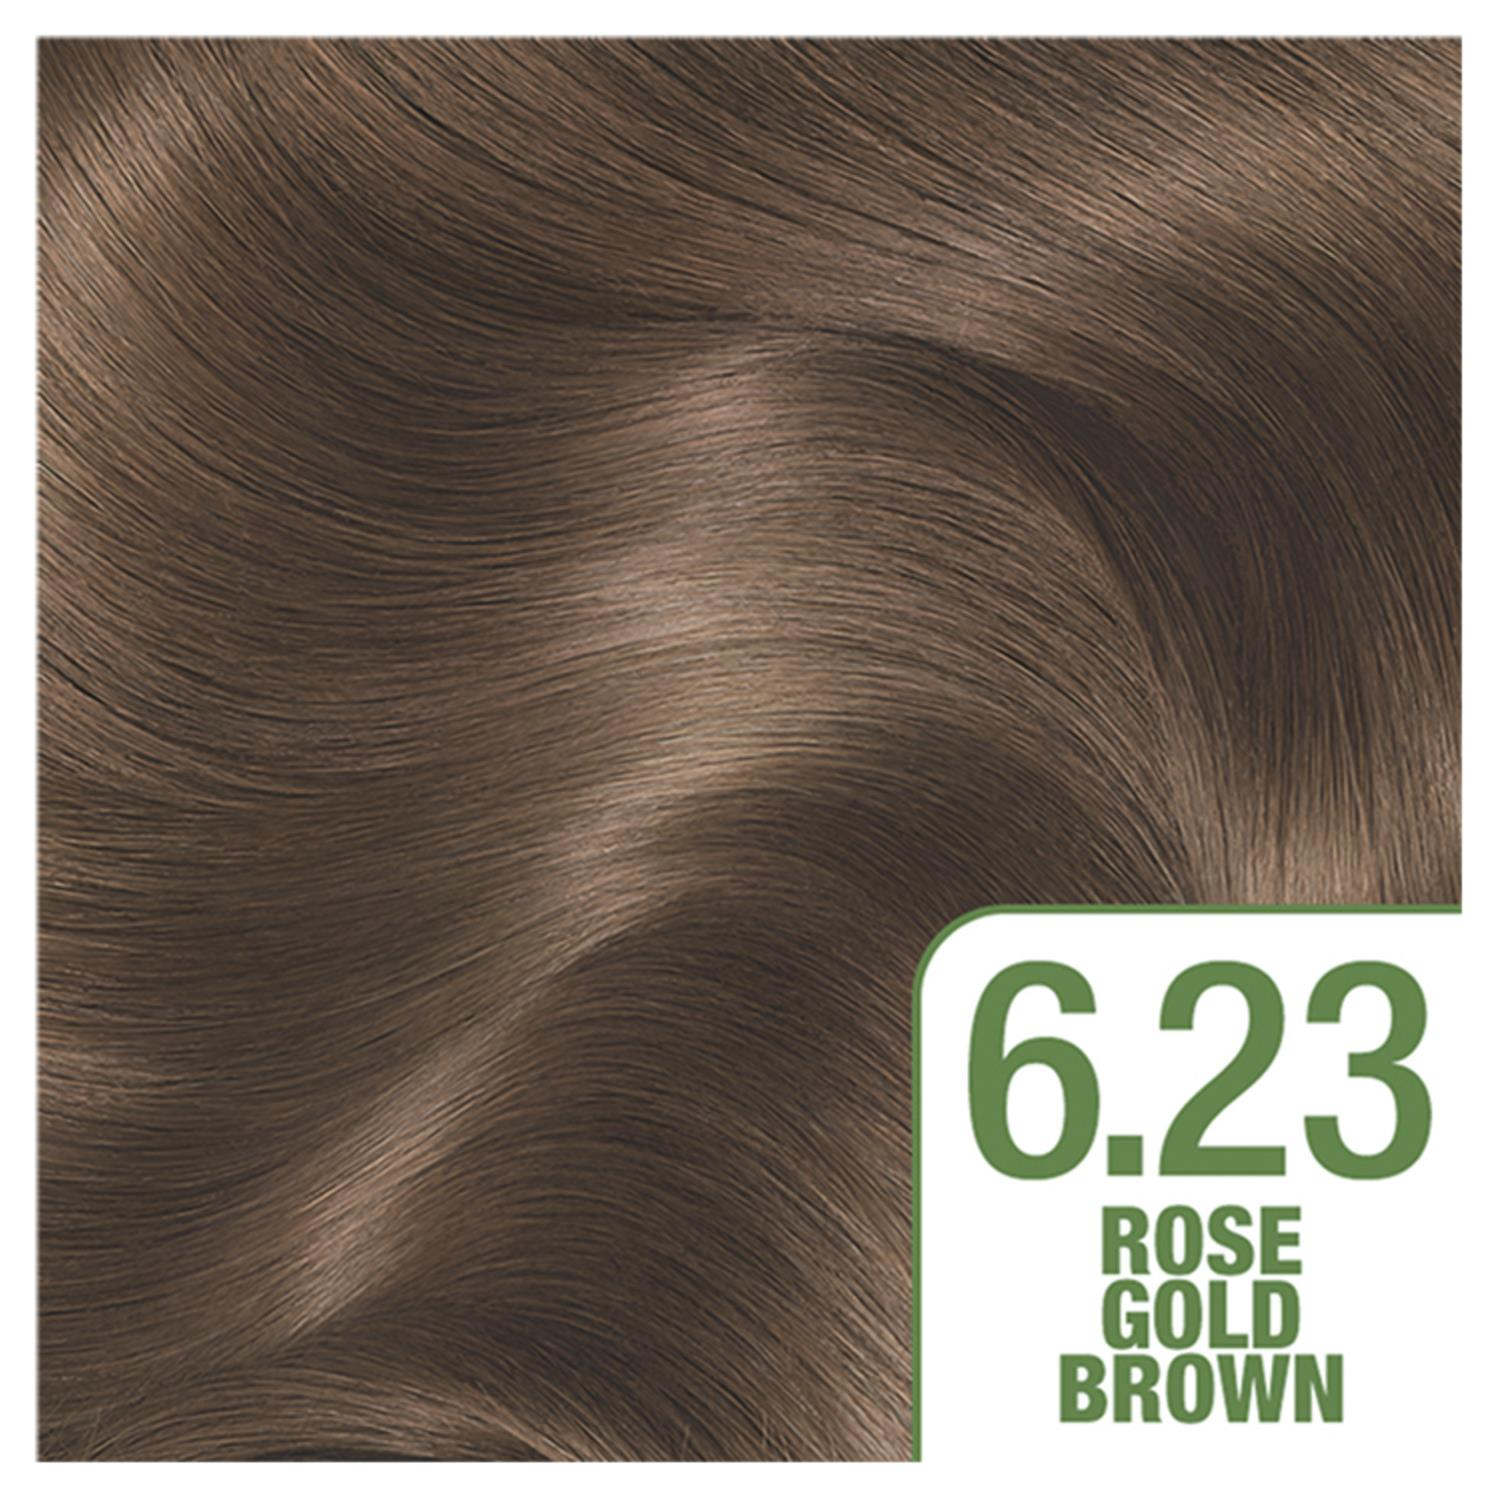 thumbnail 187 - 3 Pack Garnier Nutrisse Permanent Hair Dye With Different Shades